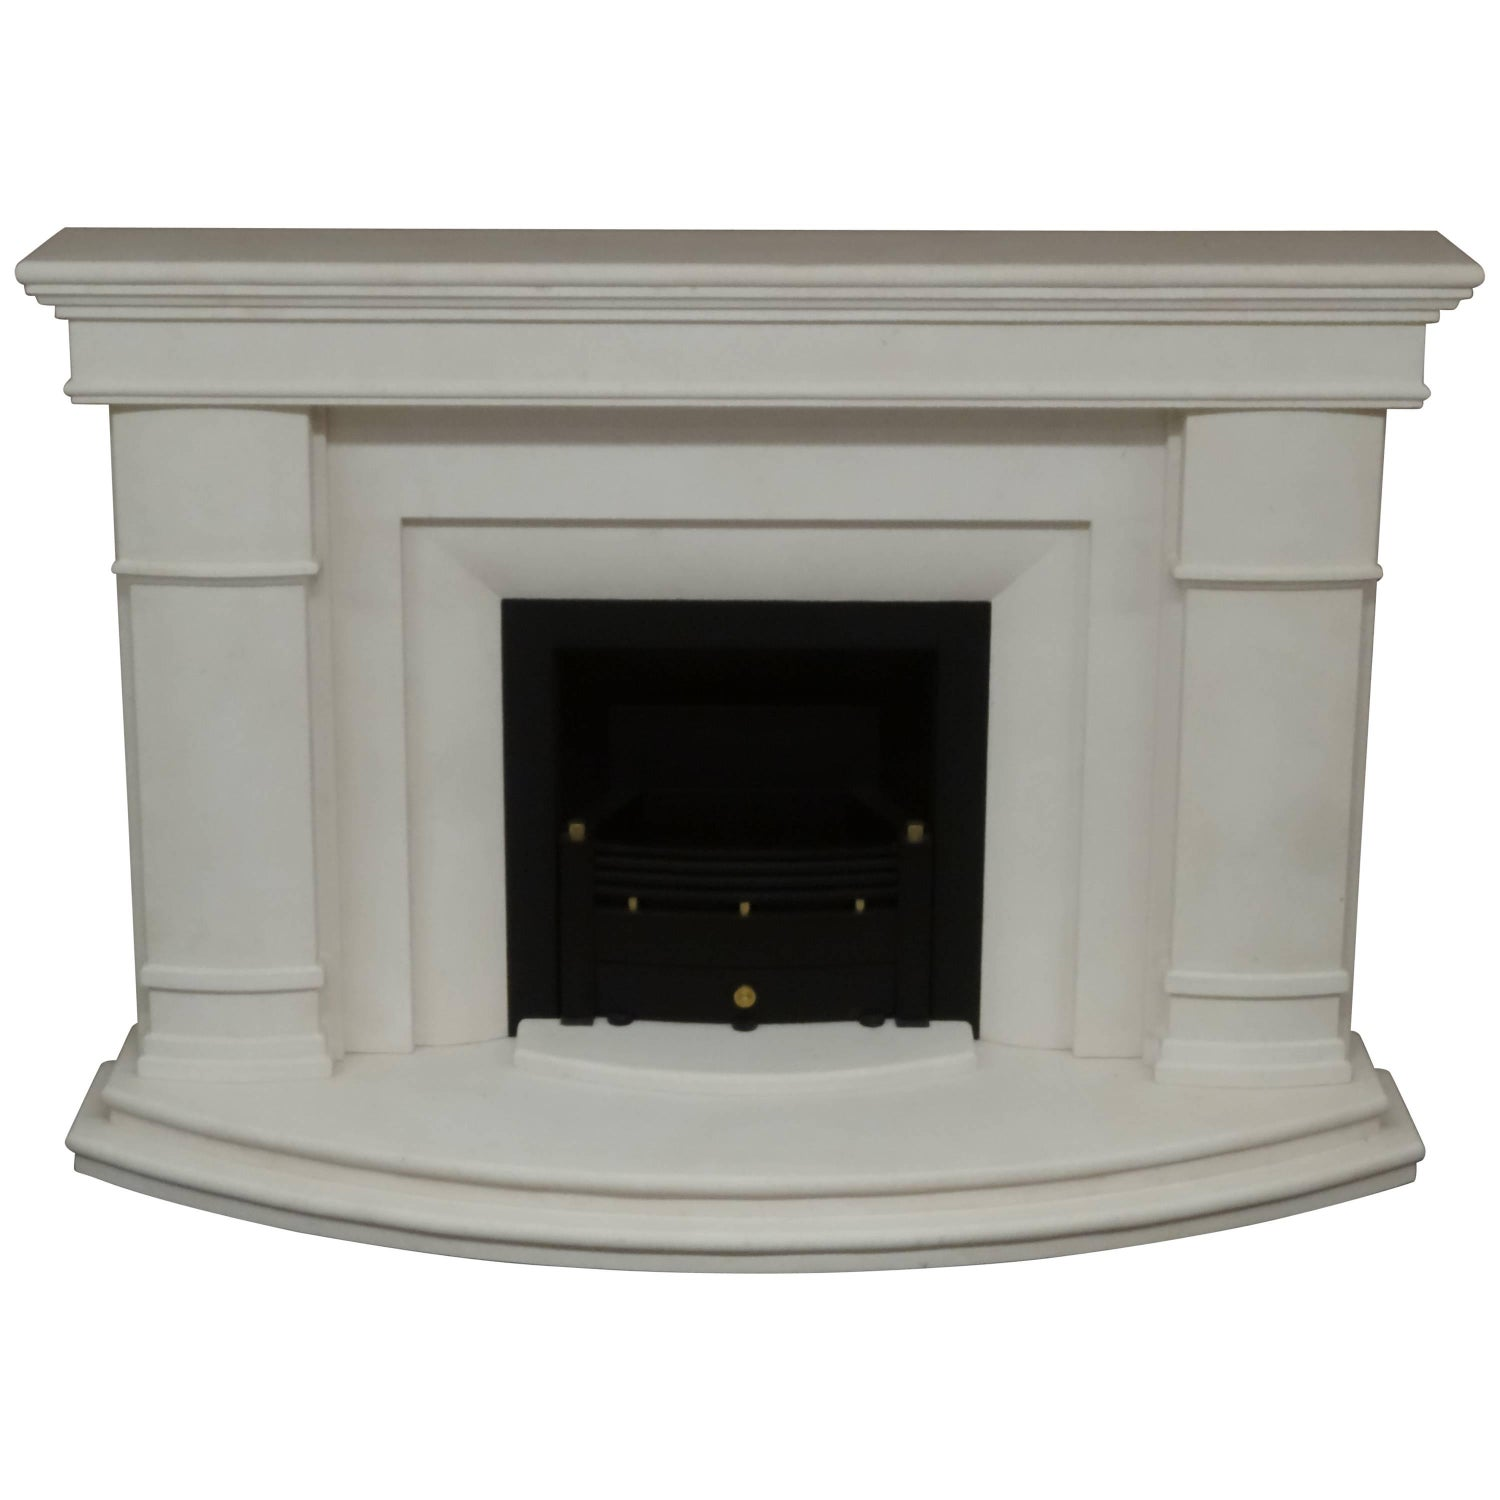 21st century reproduction moroccan mantel carved in limestone for